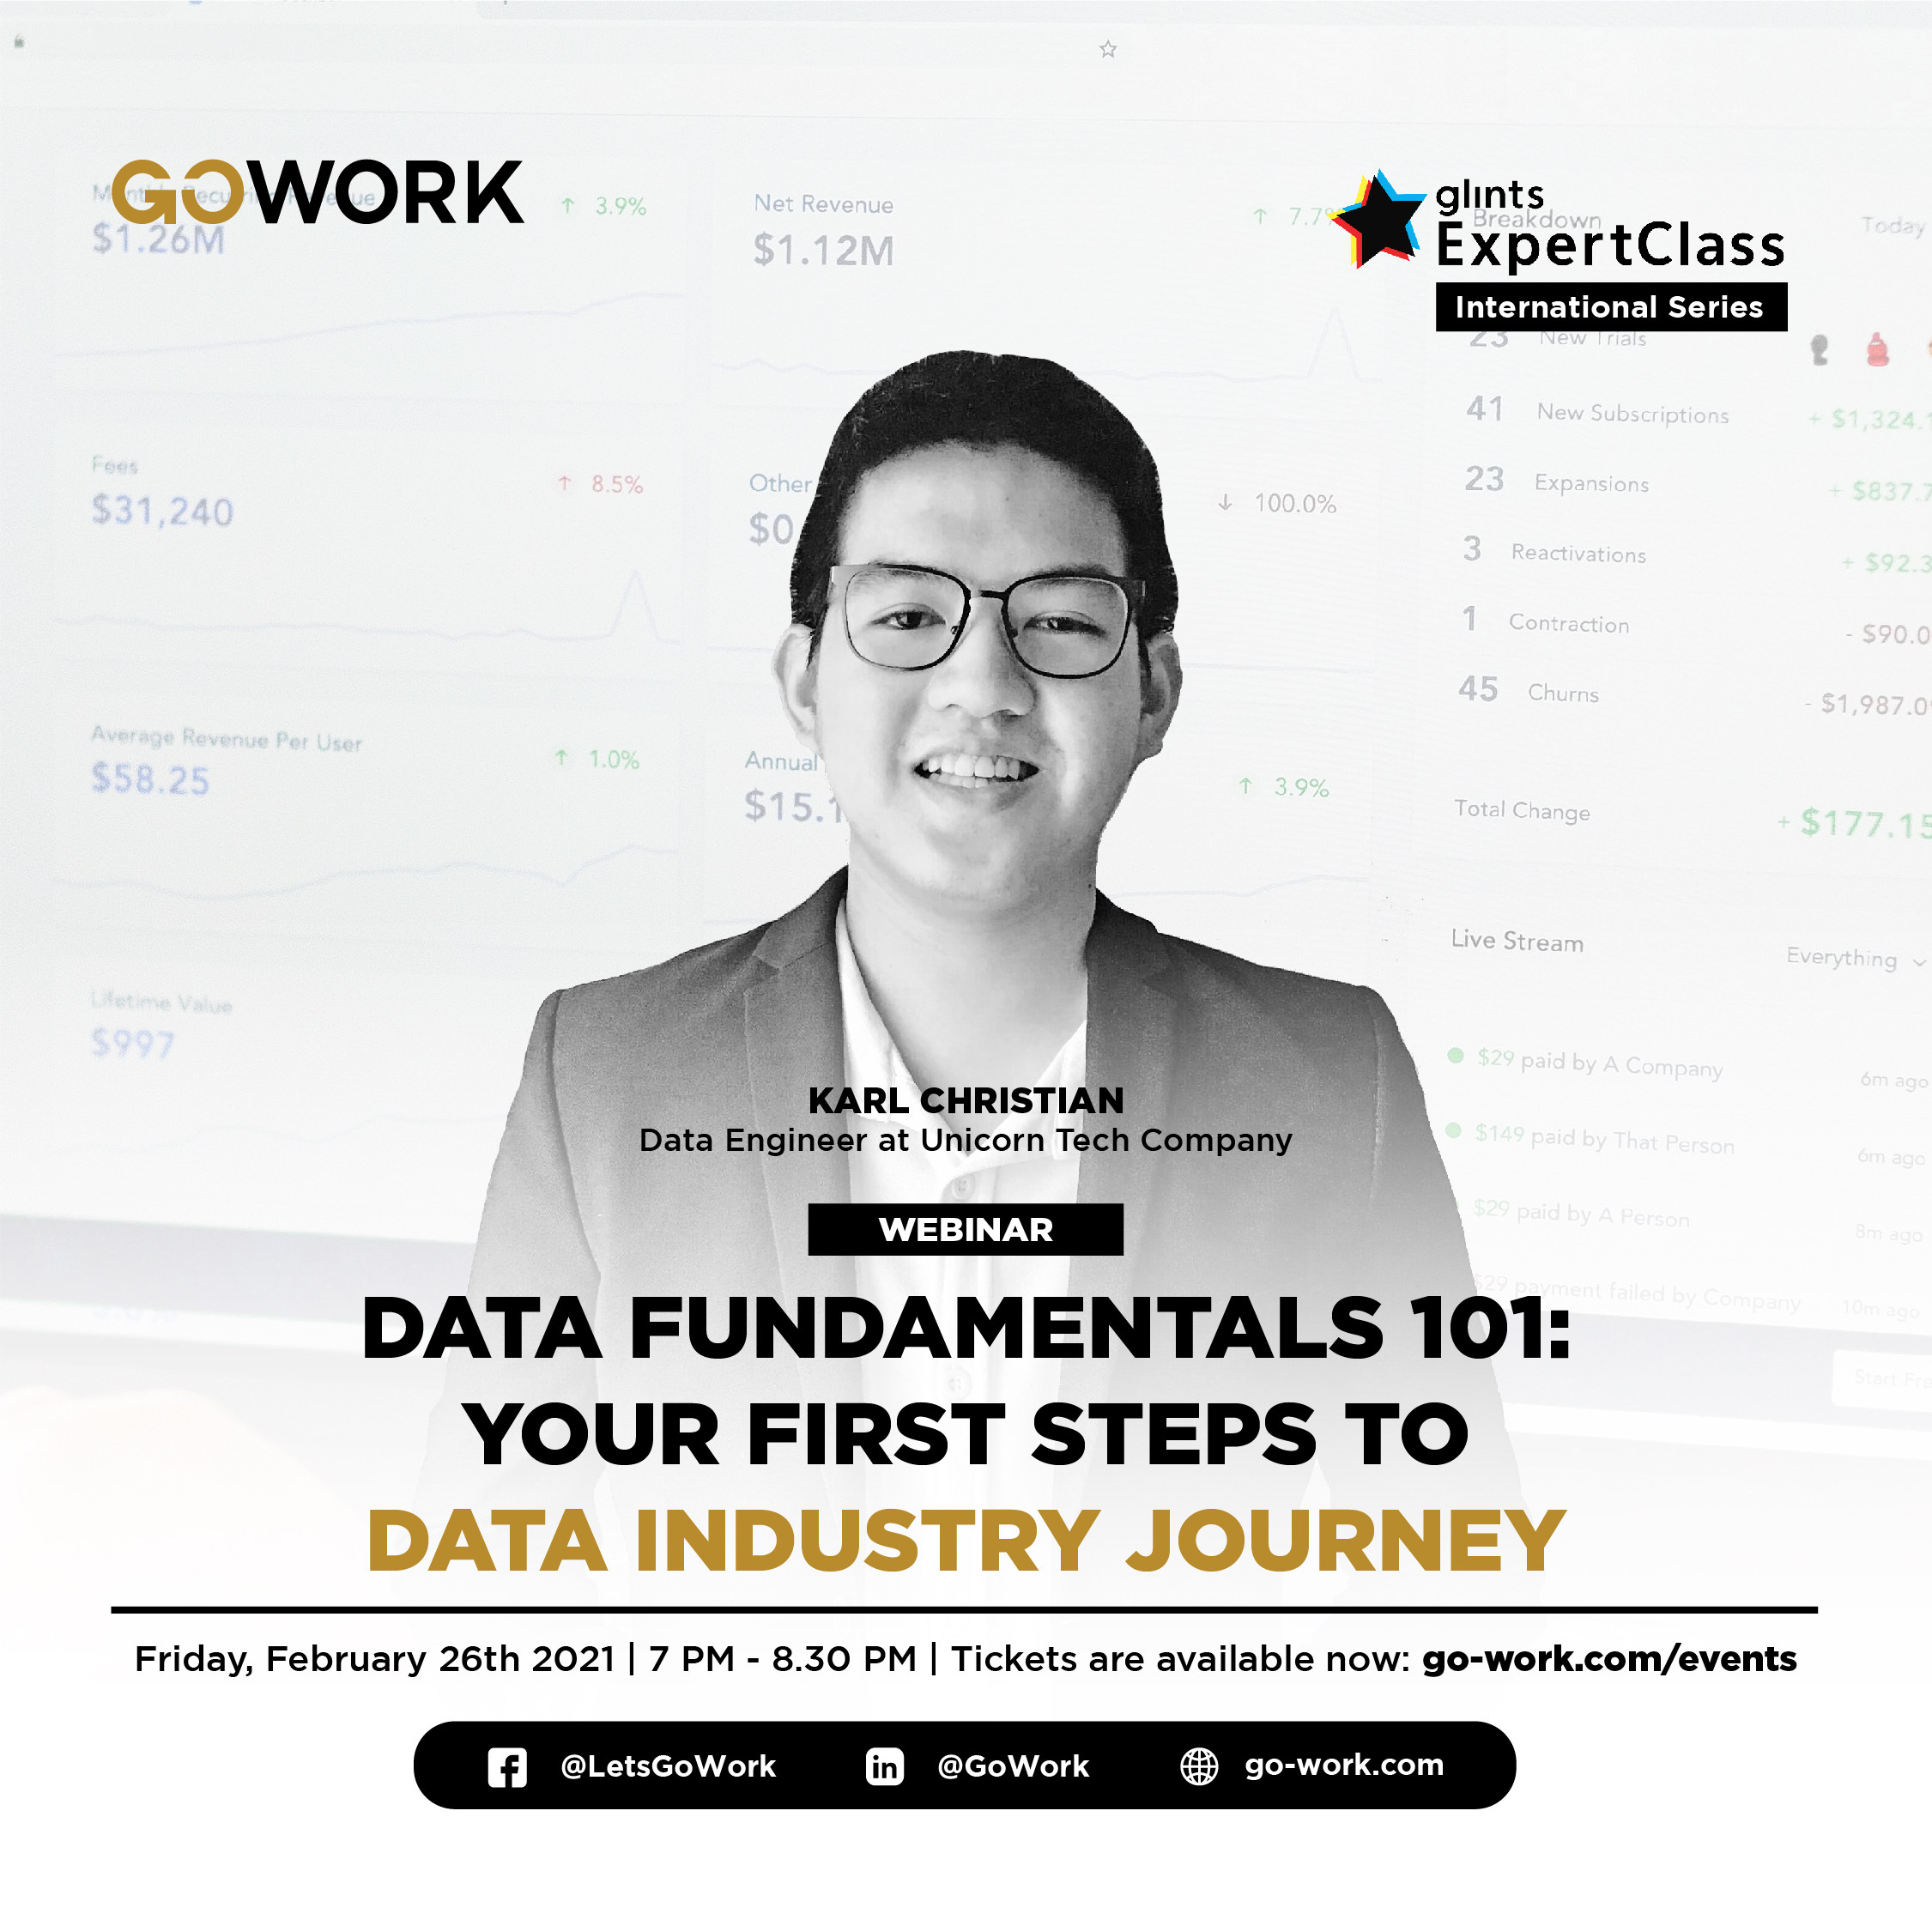 Data Fundamentals 101: Your First Steps to Data Industry Journey